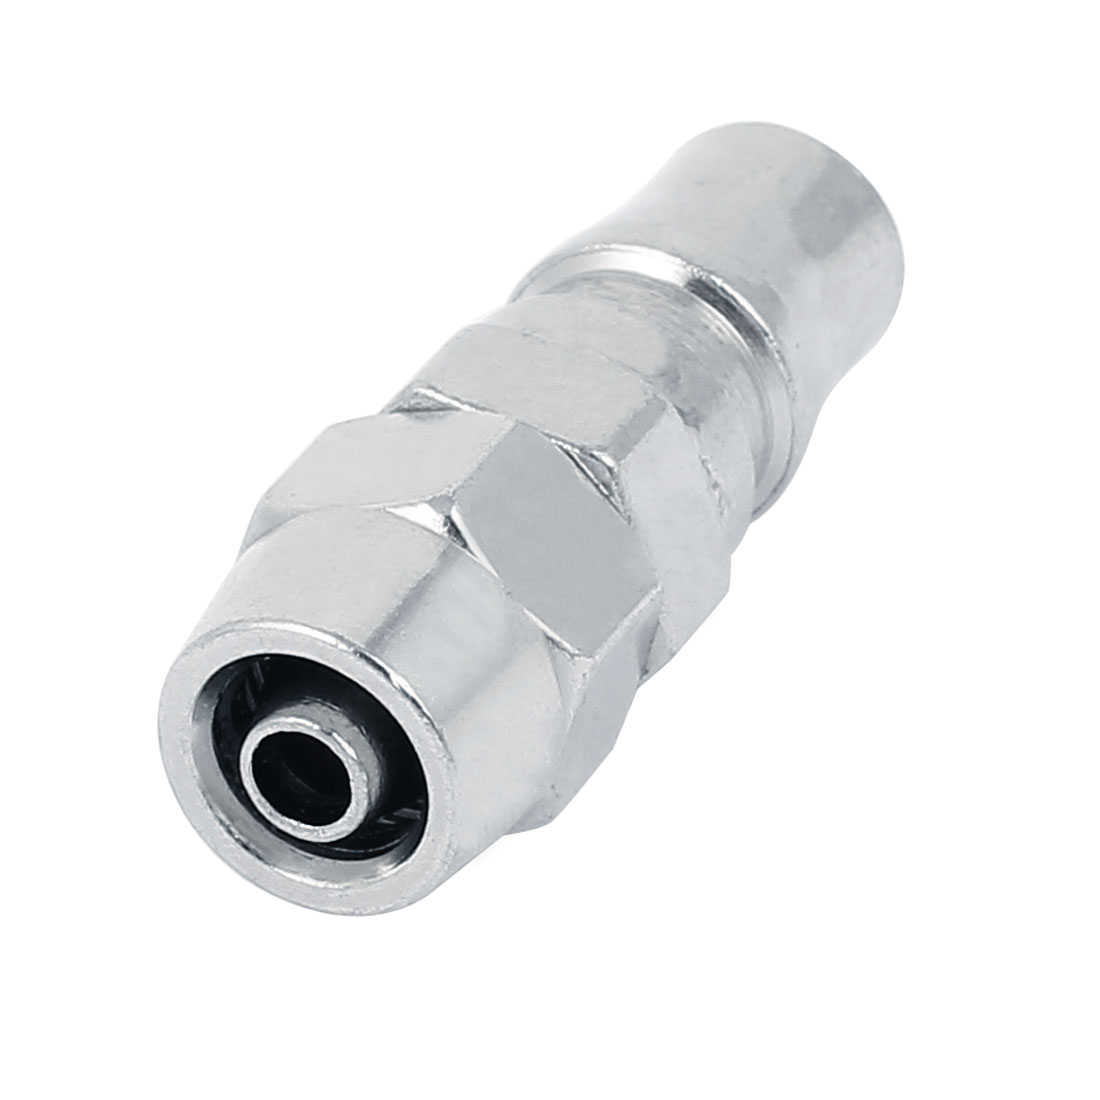 PP30 Nut Quick Fitting Pneumatic Connector Coupler Silver Tone